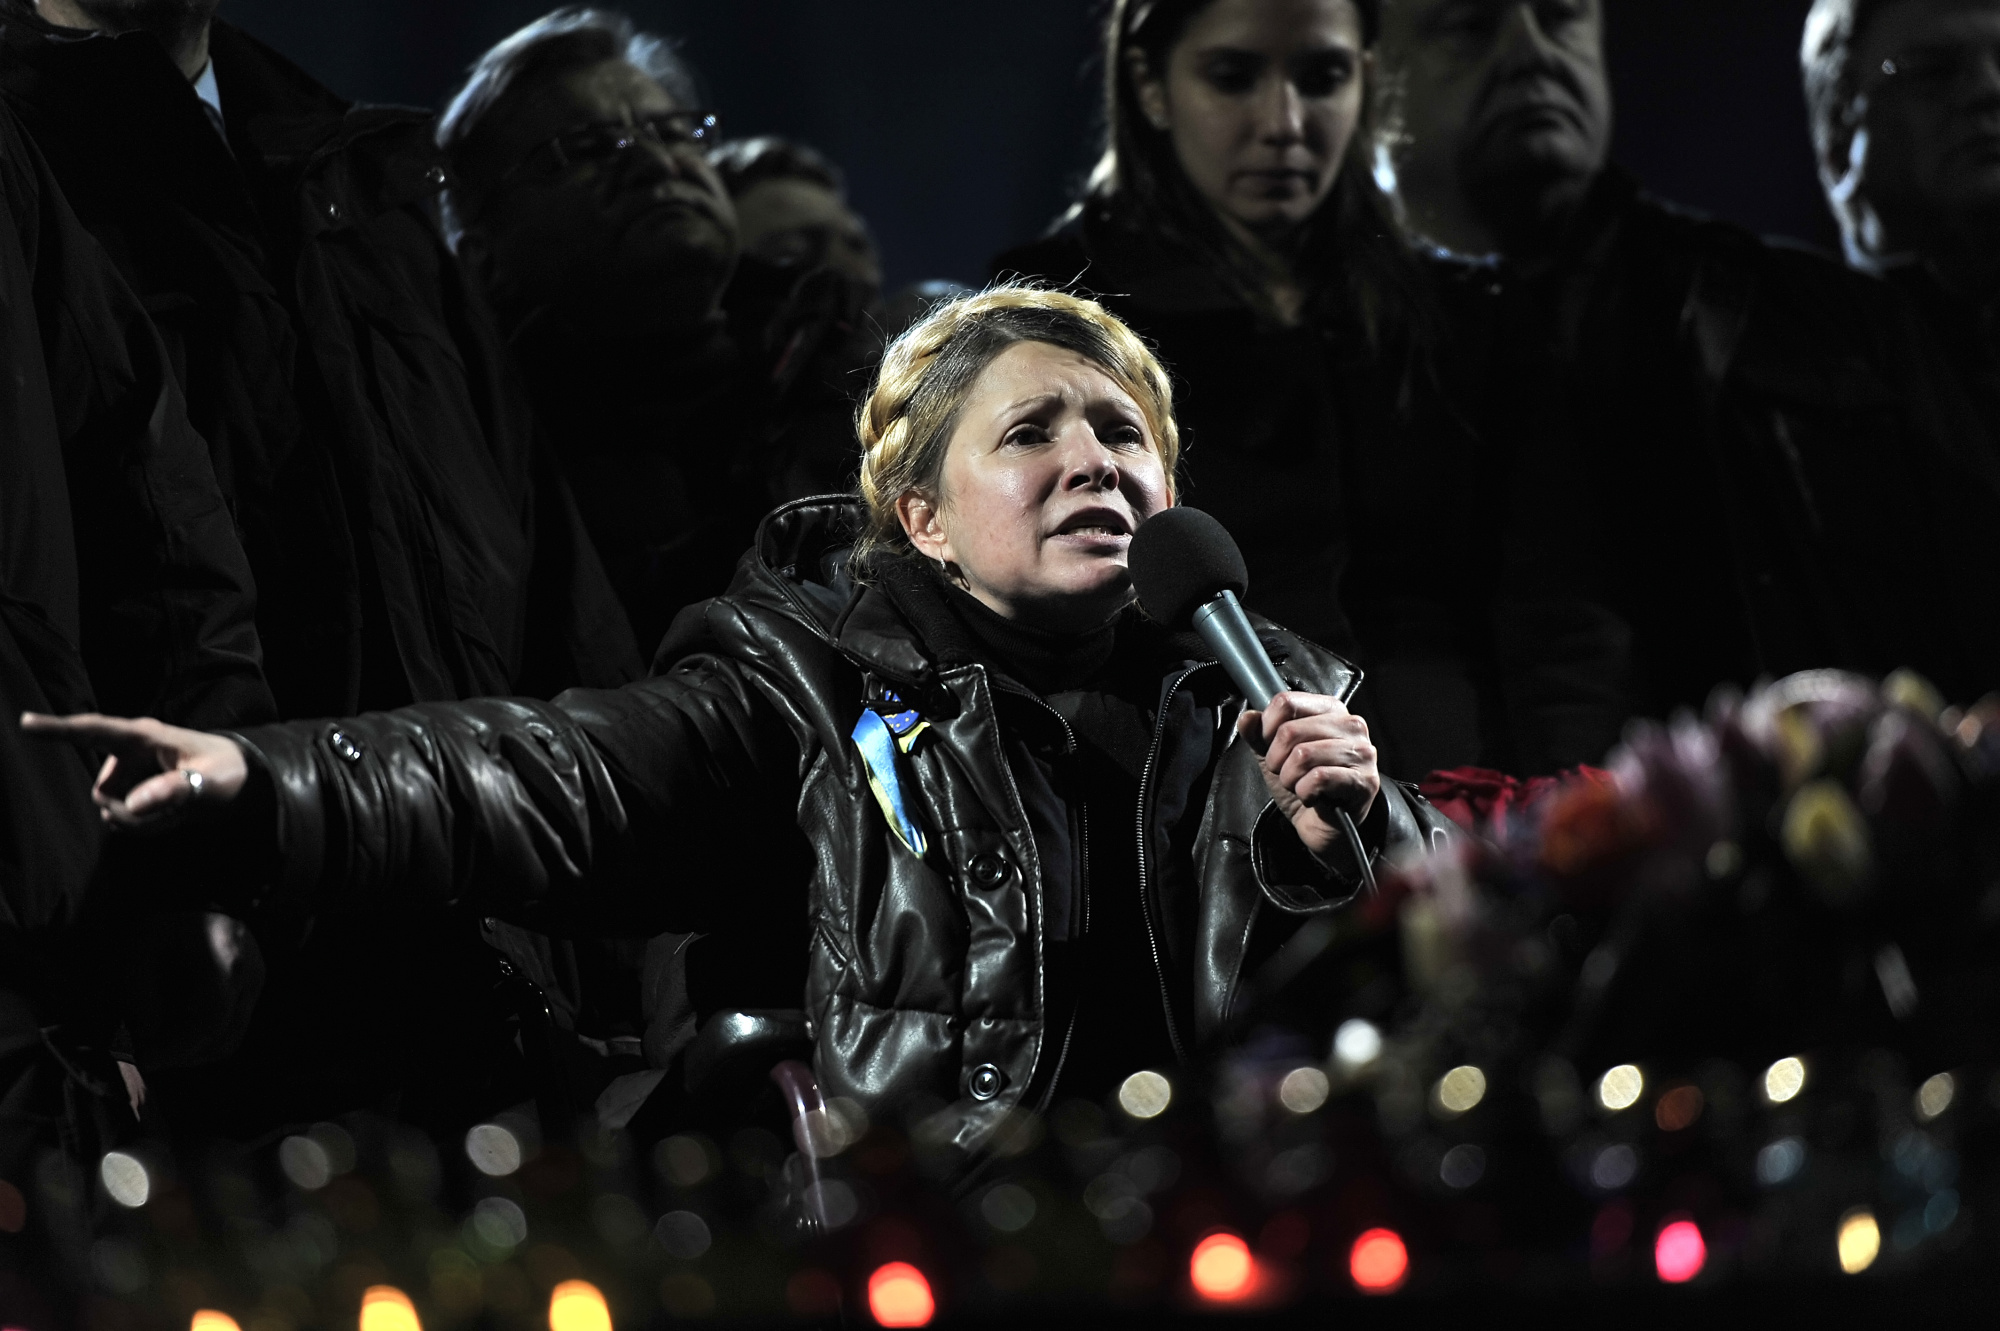 Newly freed Ukrainian opposition icon and former prime minister Yulia Tymoshenko delivers a speech on Kiev's Independance square on February 22, 2014, after her release.